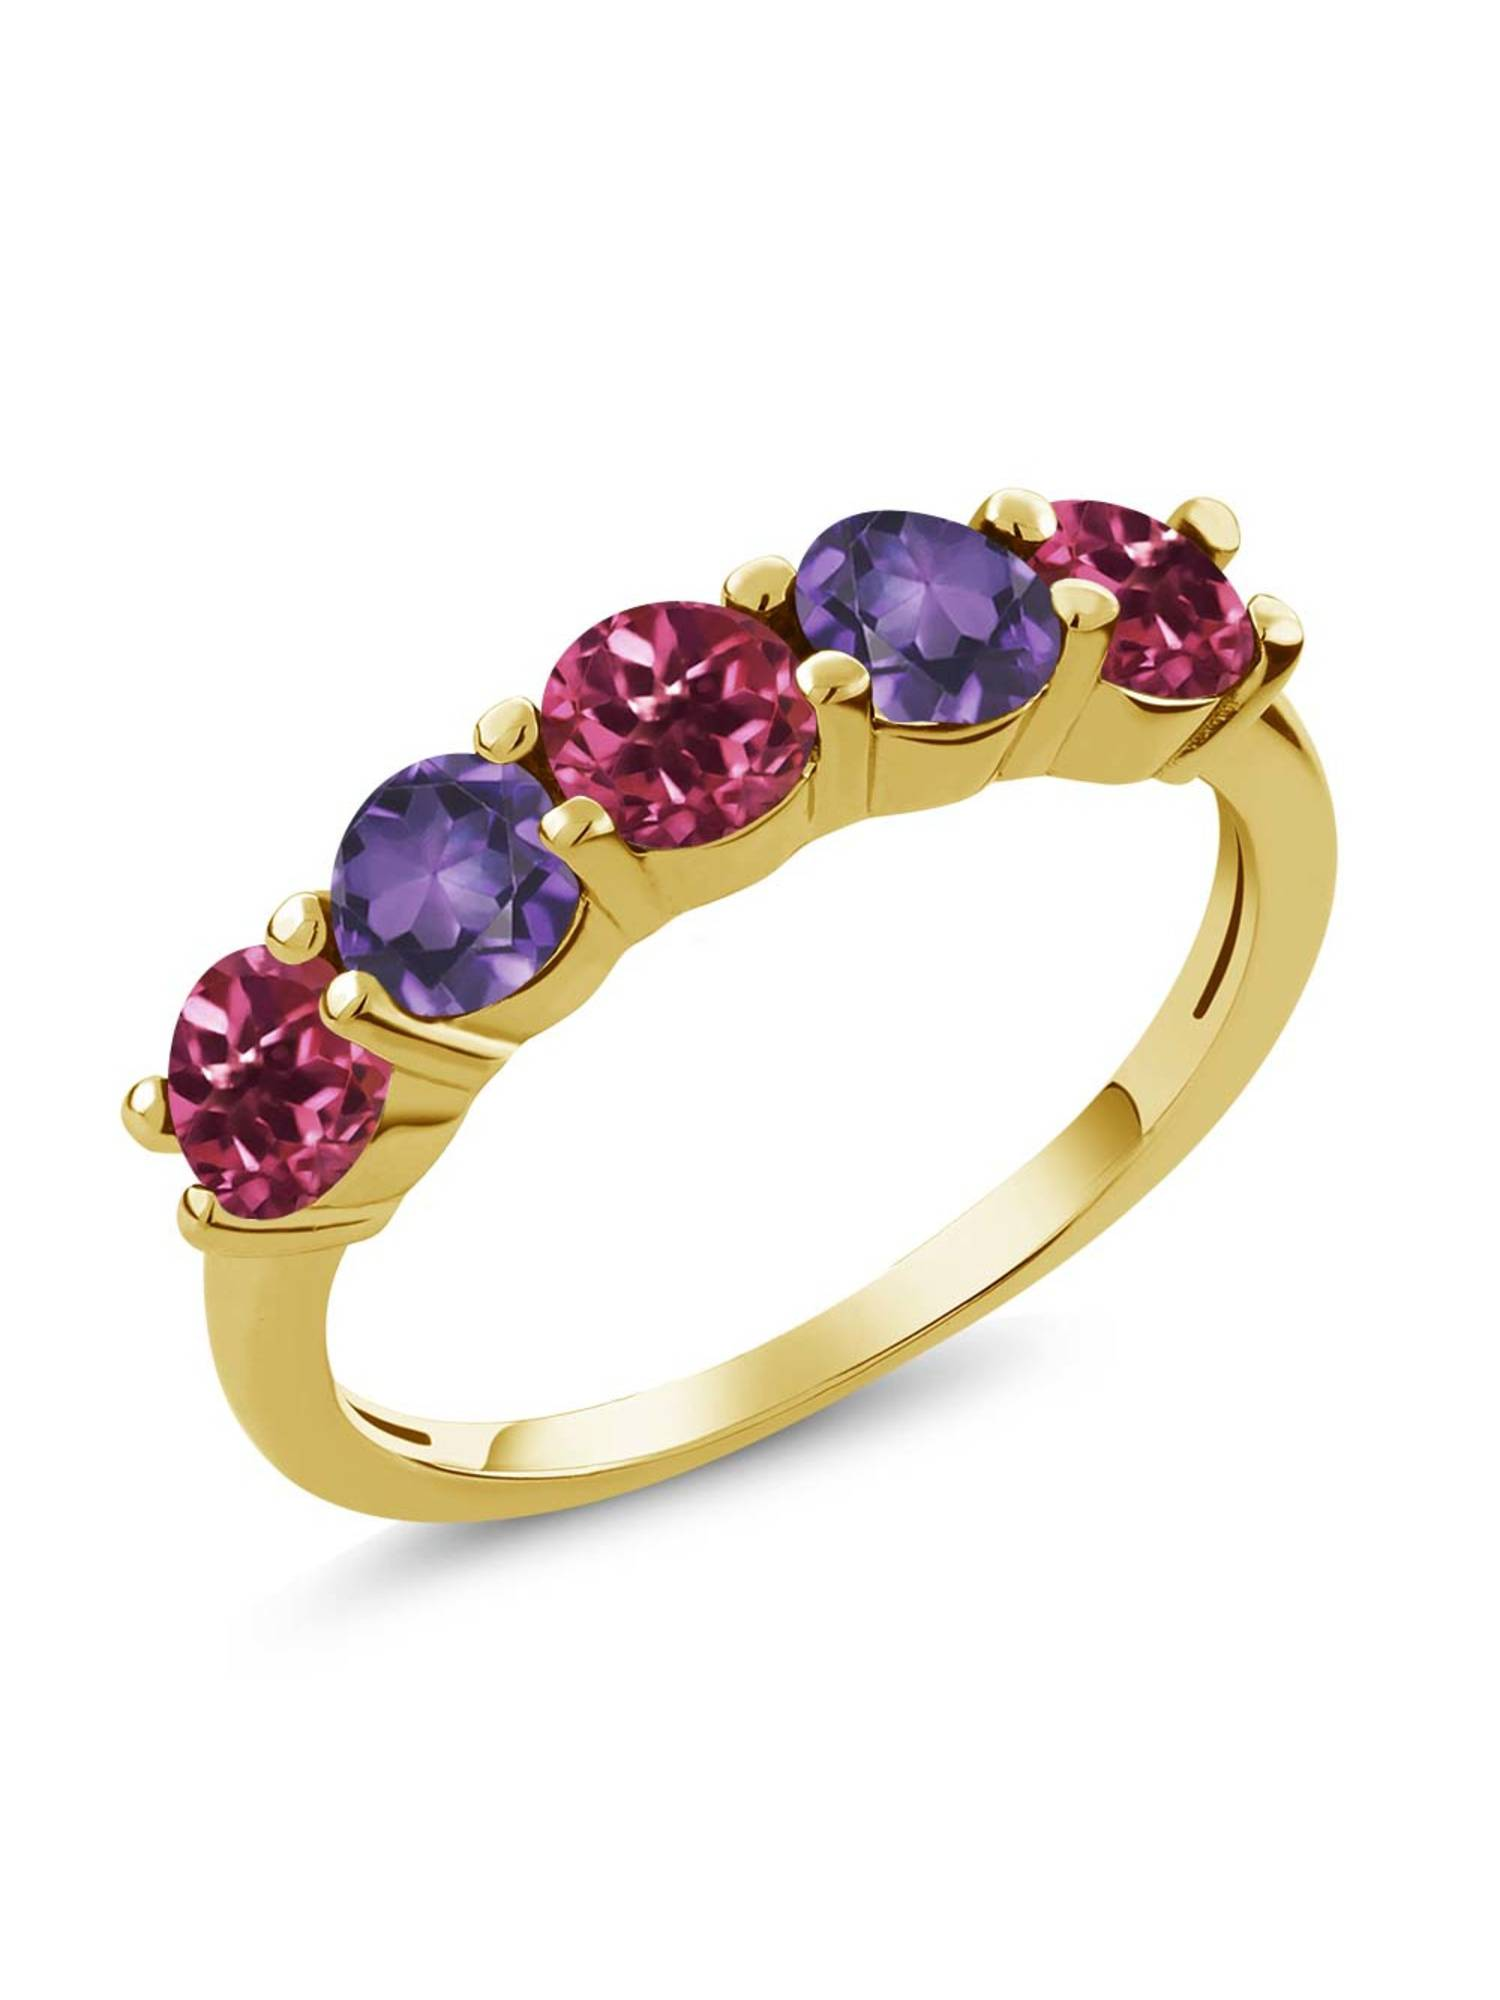 0.75 Ct Pink Tourmaline Purple Amethyst 18K Yellow Gold Plated Silver Wedding Band Ring by